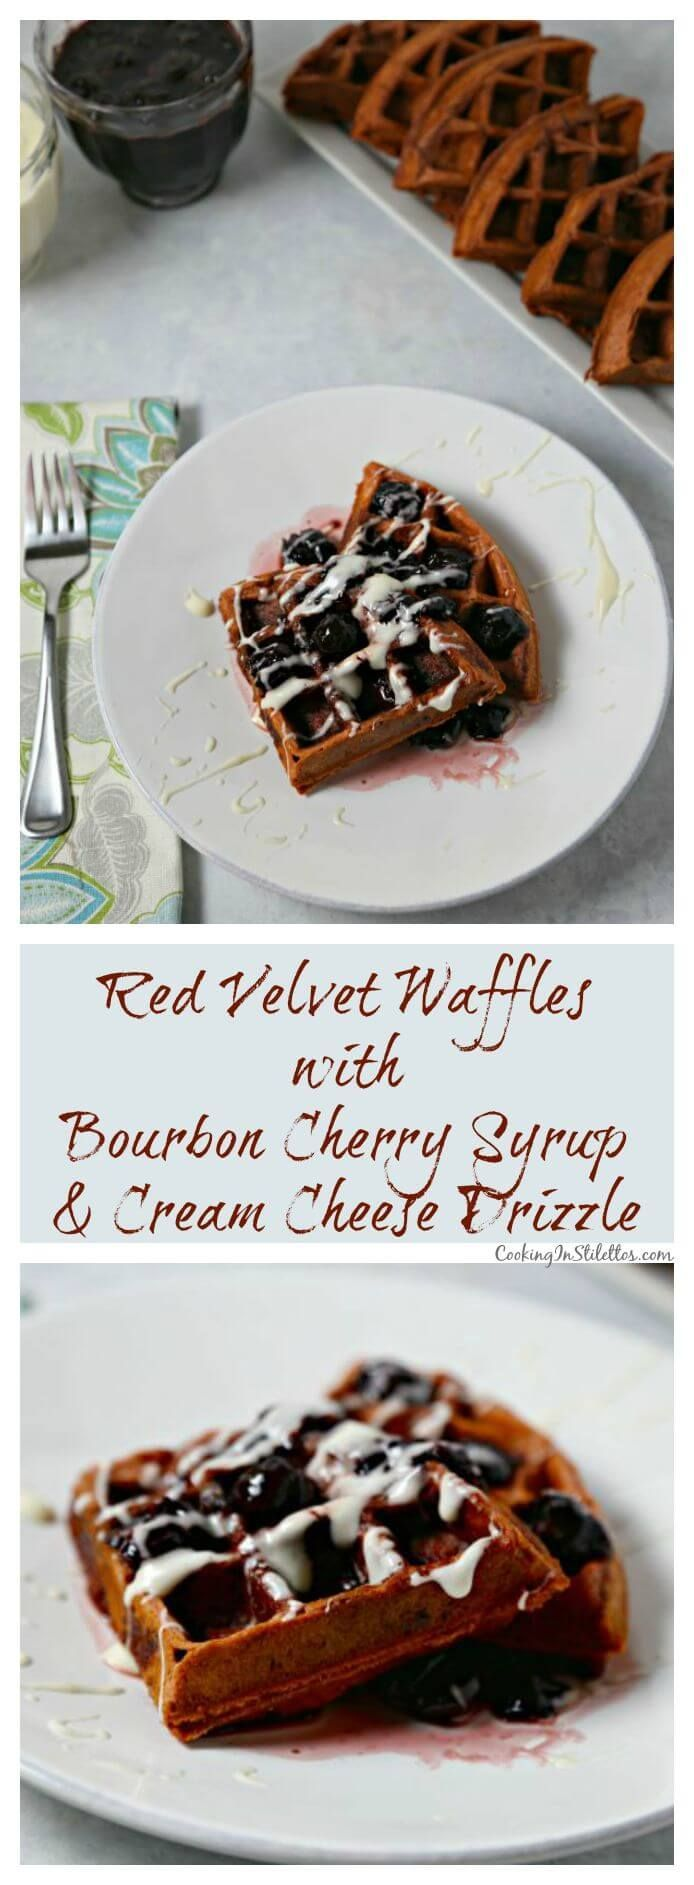 Red Velvet Waffles with Bourbon Cherry Syrup and drizzled with a sweet cream cheese glaze are rich, decadent and will have you swooning with each bite | Cooking In Stilettos ~ http://cookinginstilettos.com